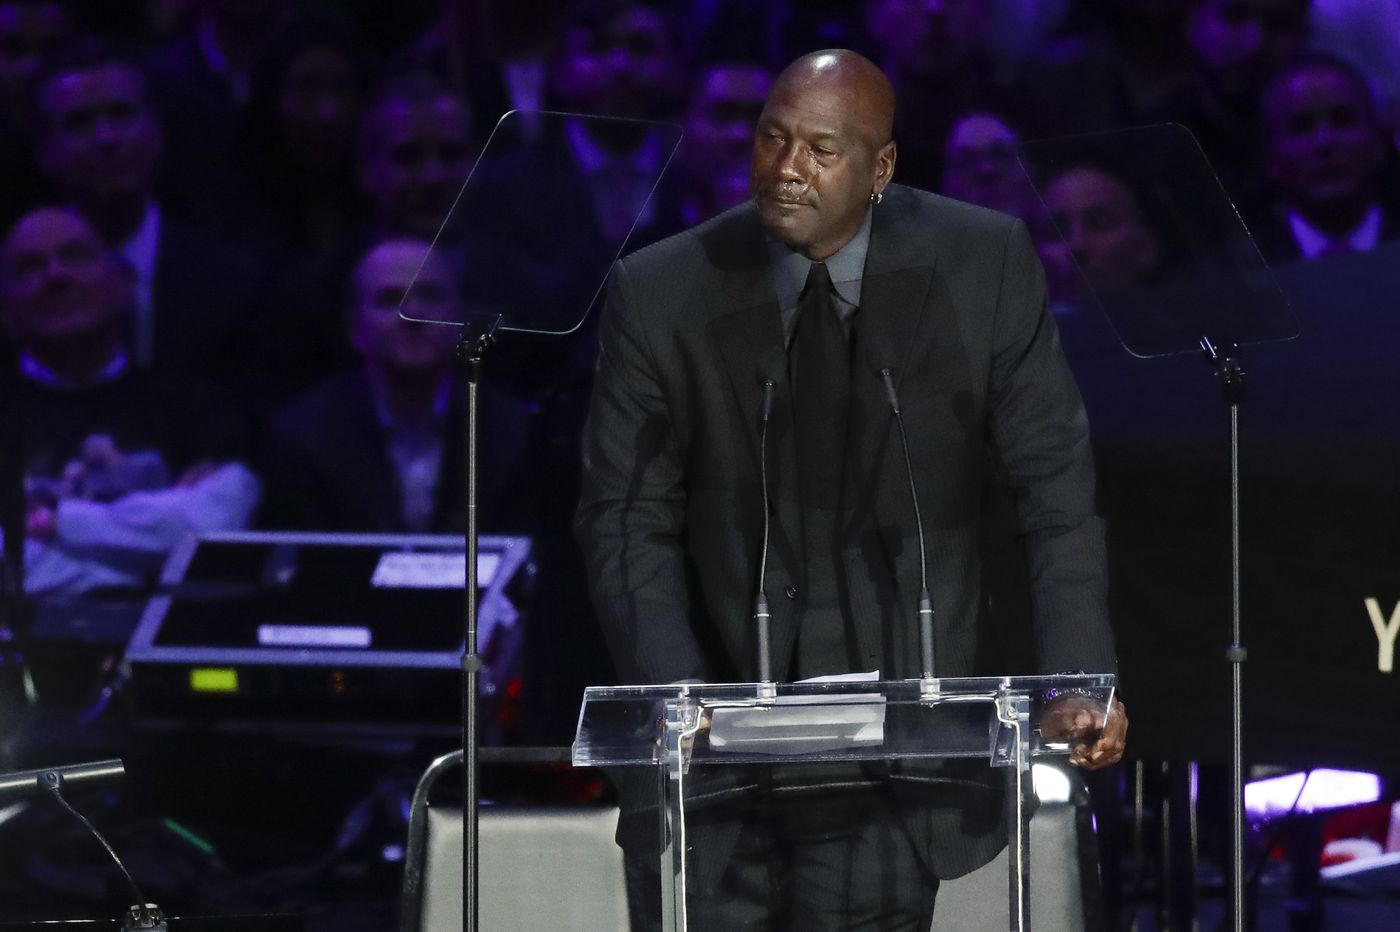 M.J., Shaq, Taurasi, others honor Kobe and Gianna Bryant; thousands of immigrants will be eligible to vote in Pa. this year | Morning Newsletter